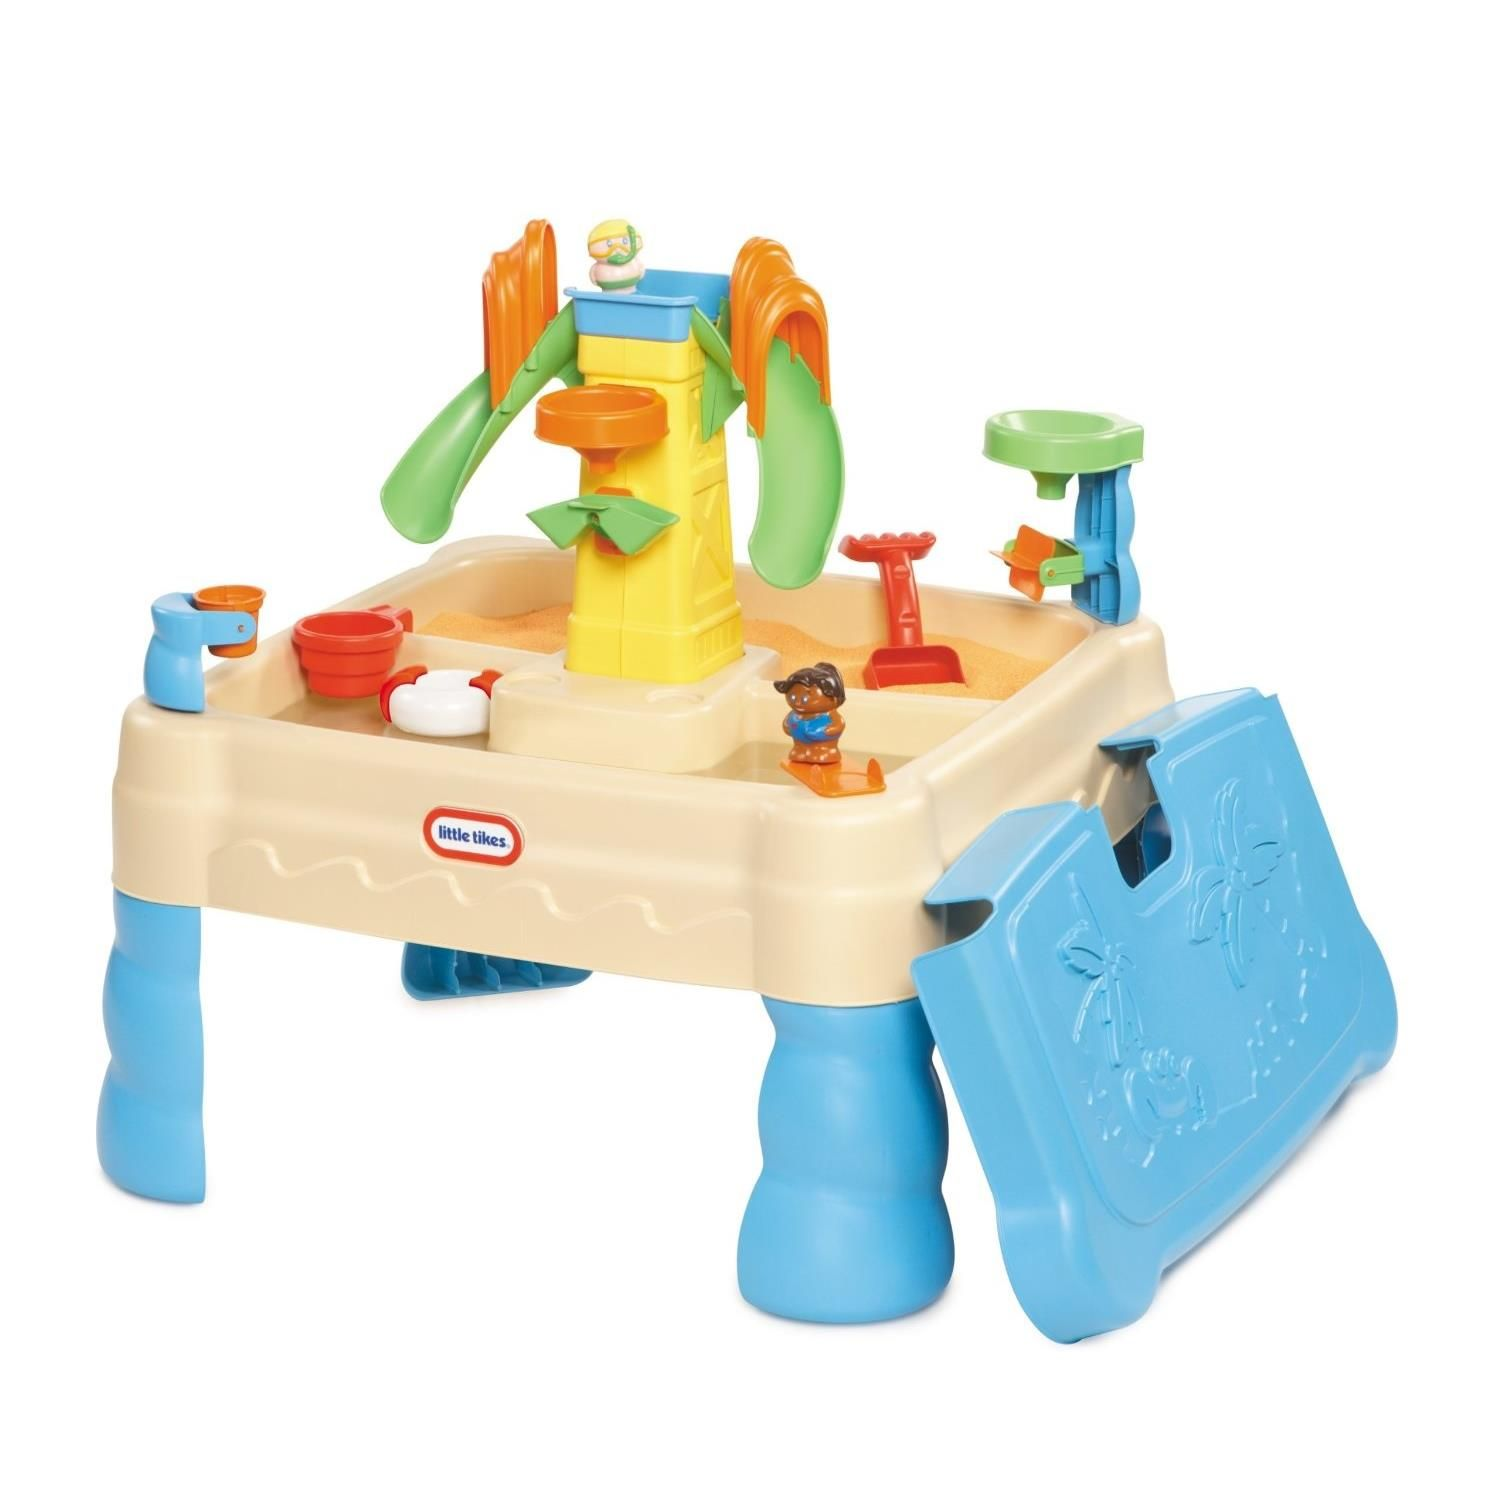 Sandy Lagoon Waterpark by Little Tikes at BabyEarth.com, $53.49